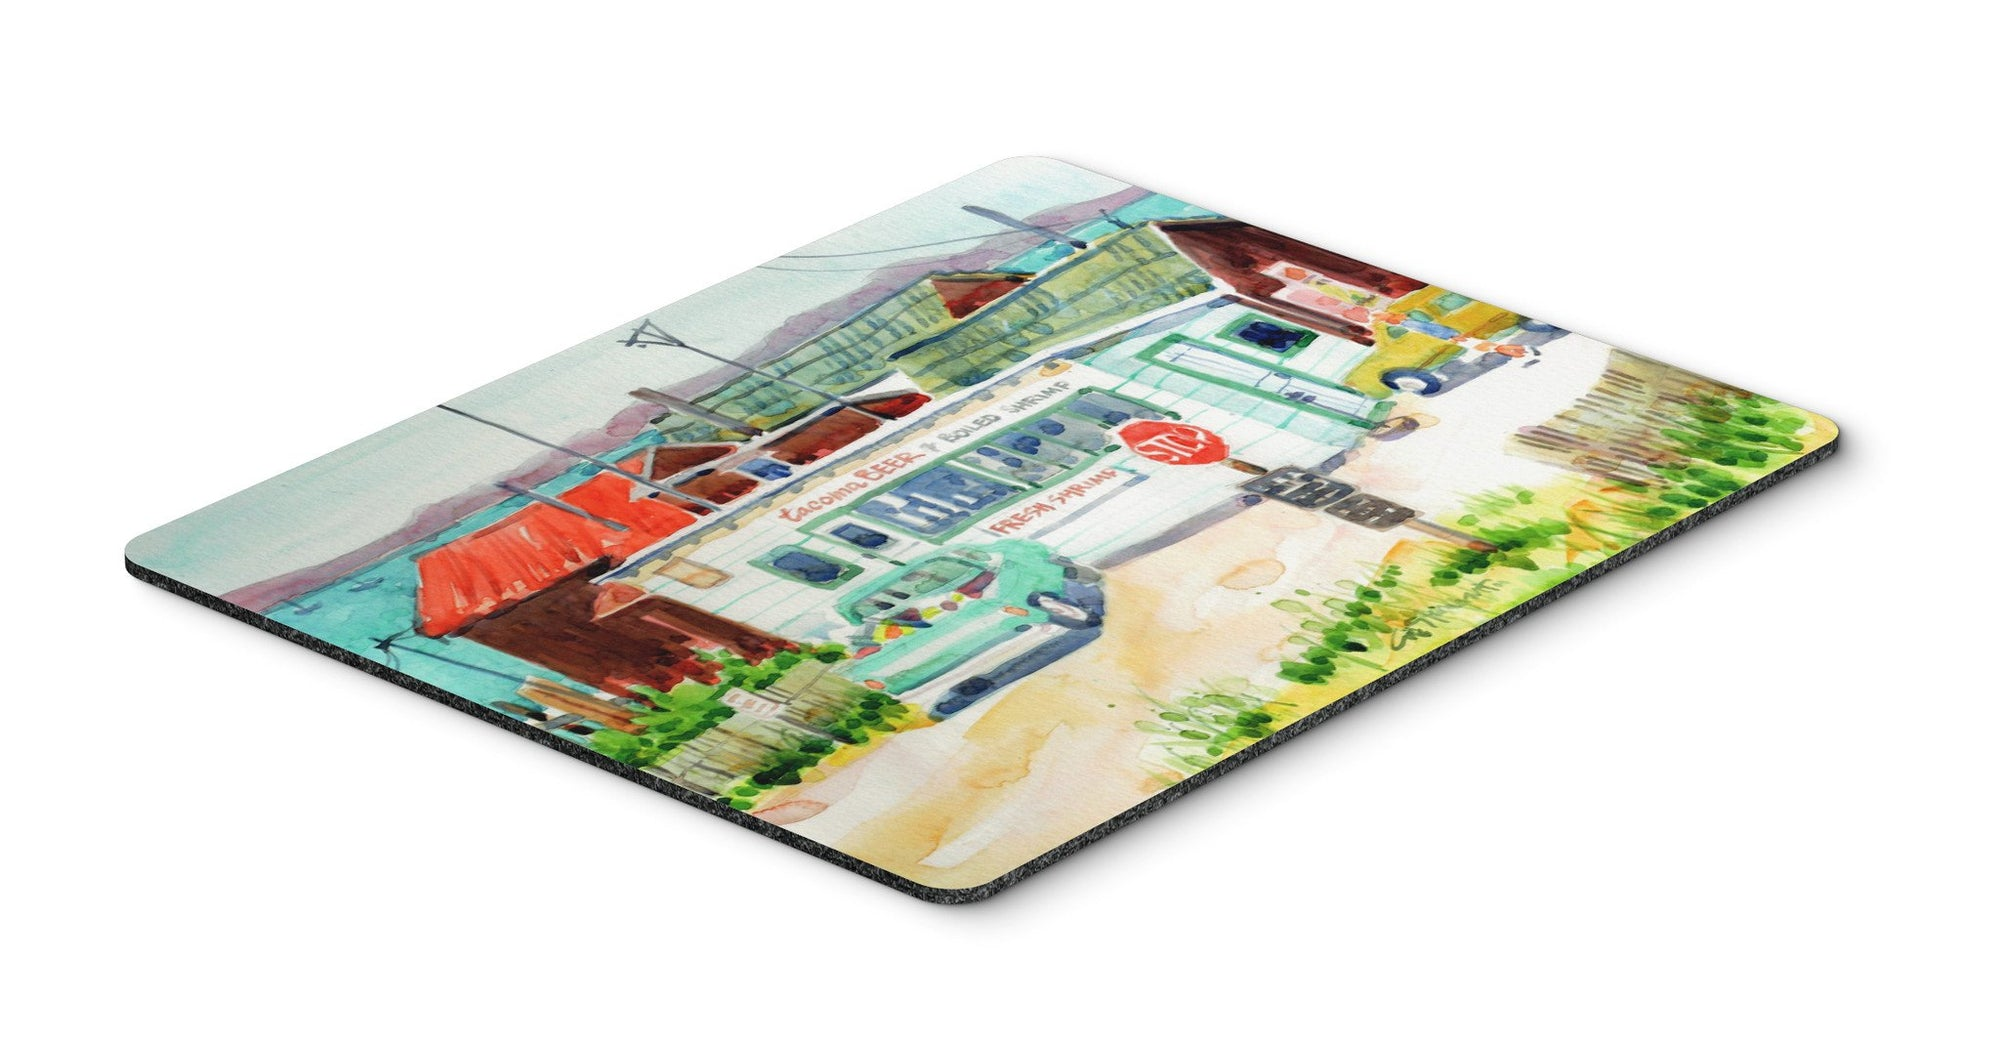 Tacoma Beer and Boiled Shrimp Market Mouse Pad, Hot Pad or Trivet 6141MP by Caroline's Treasures